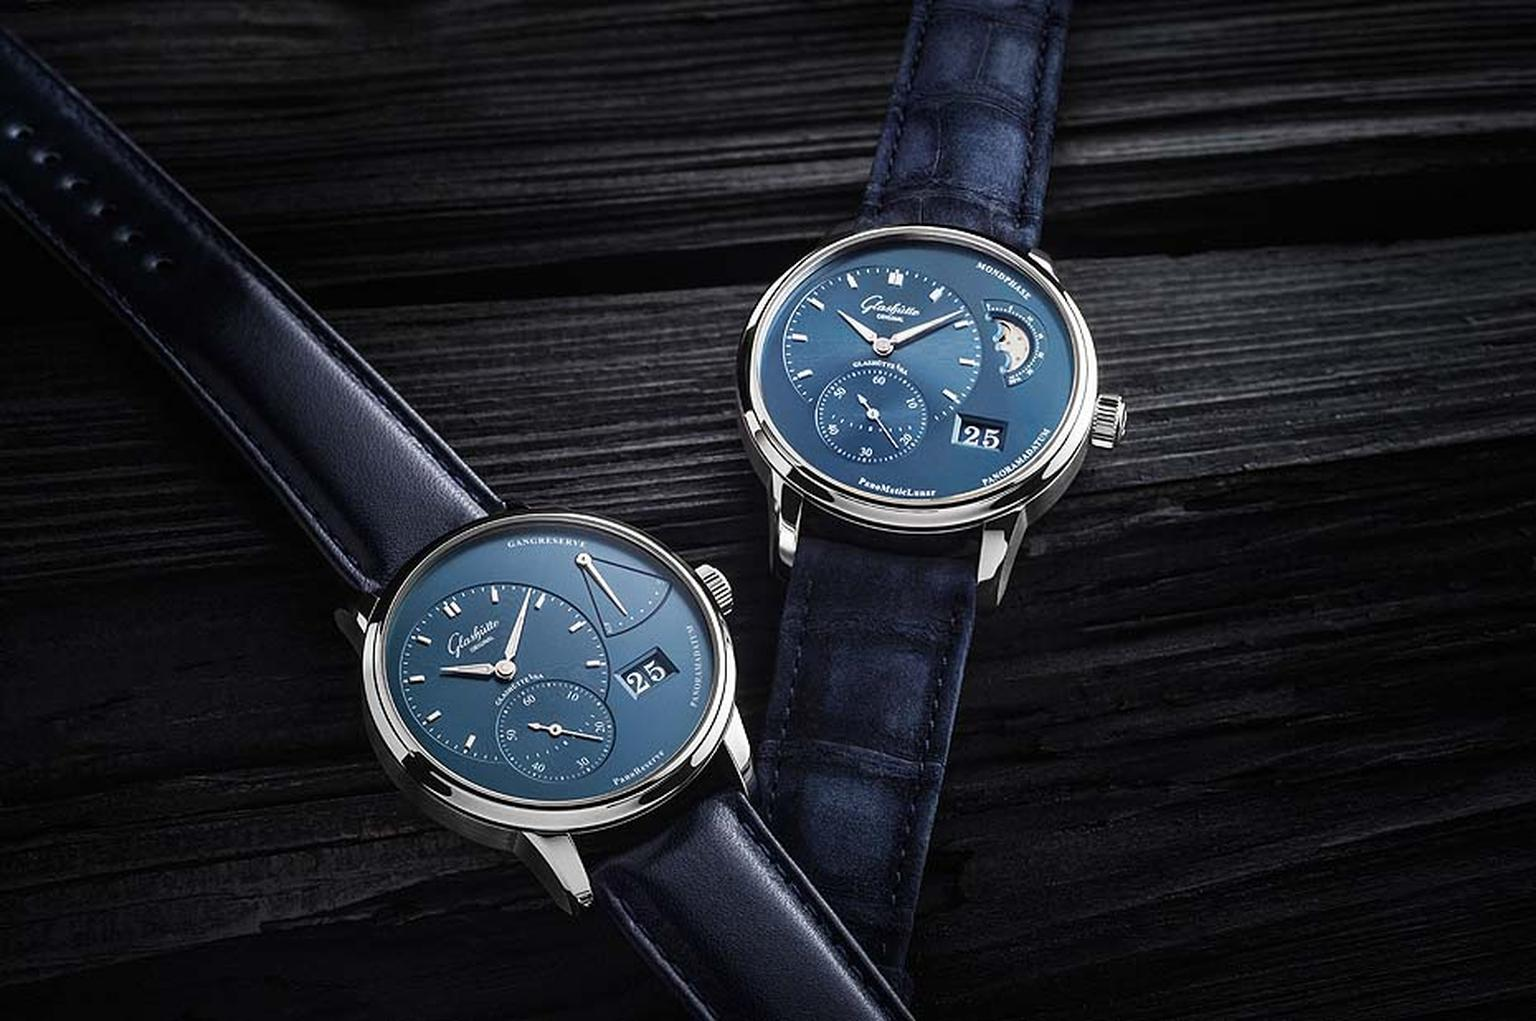 Glashütte Original PanoMaticLunar and PanoReserve watches with new sky blue dials and 40mm stainless steel cases. The PanoReserve model gets its name from the fan-shaped retrograde power reserve indicator on the right of the dial, and the PanoMaticLunar f